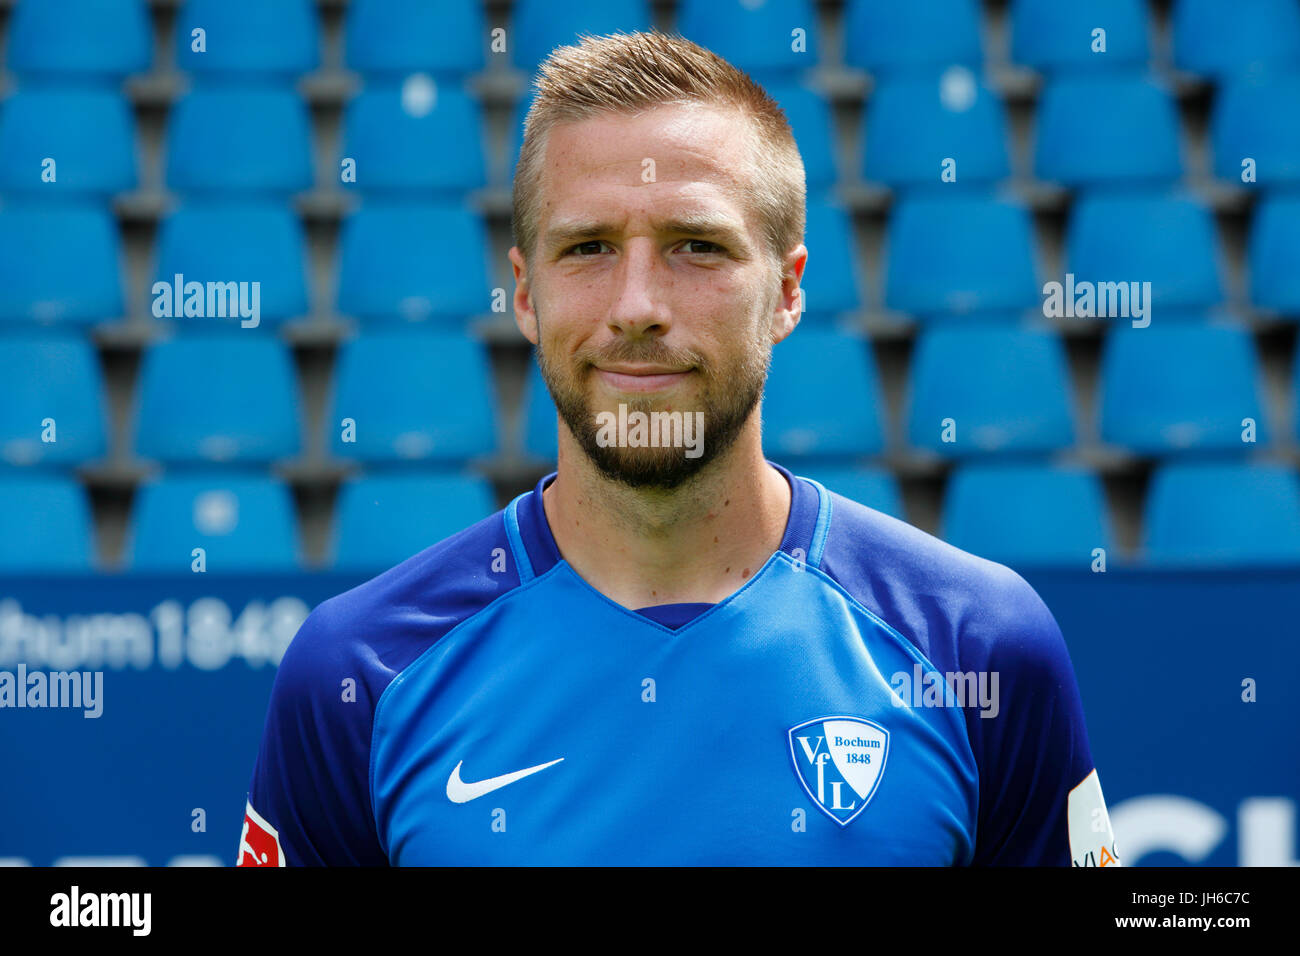 football, 2. Bundesliga, 2017/2018, VfL Bochum, team presentation for the game season, Marco Stiepermann - Stock Image